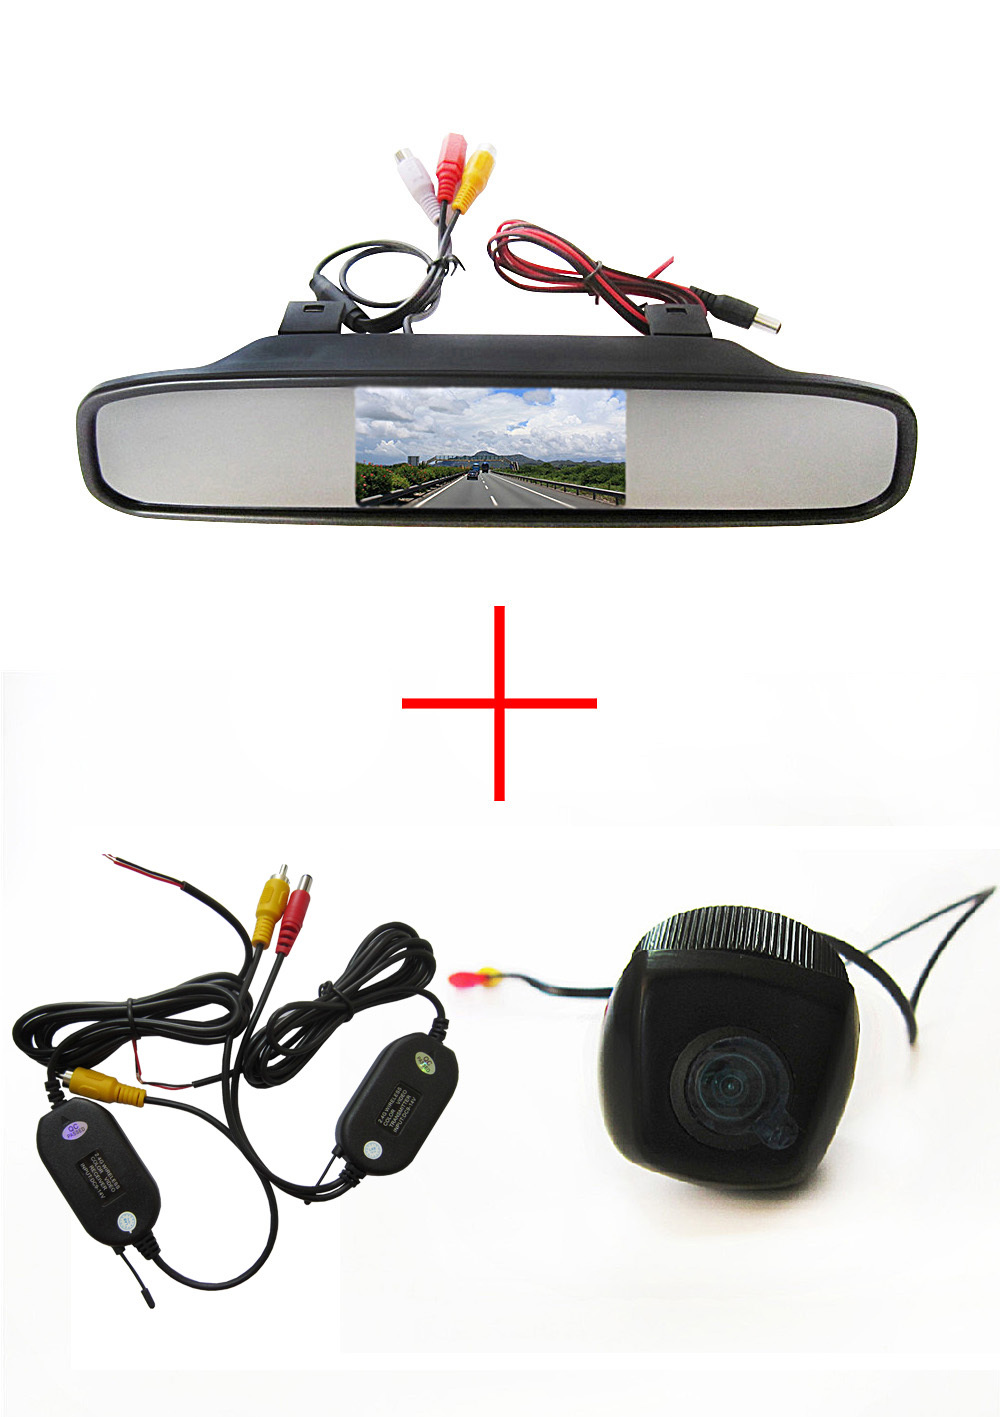 Wireless Color CCD Car Rear View Camera for BMW X1 X3 X5 X6 with 4.3 Inch Rear view Mirror Monitor электрический шкаф electrolux ezc52430ax серебристый